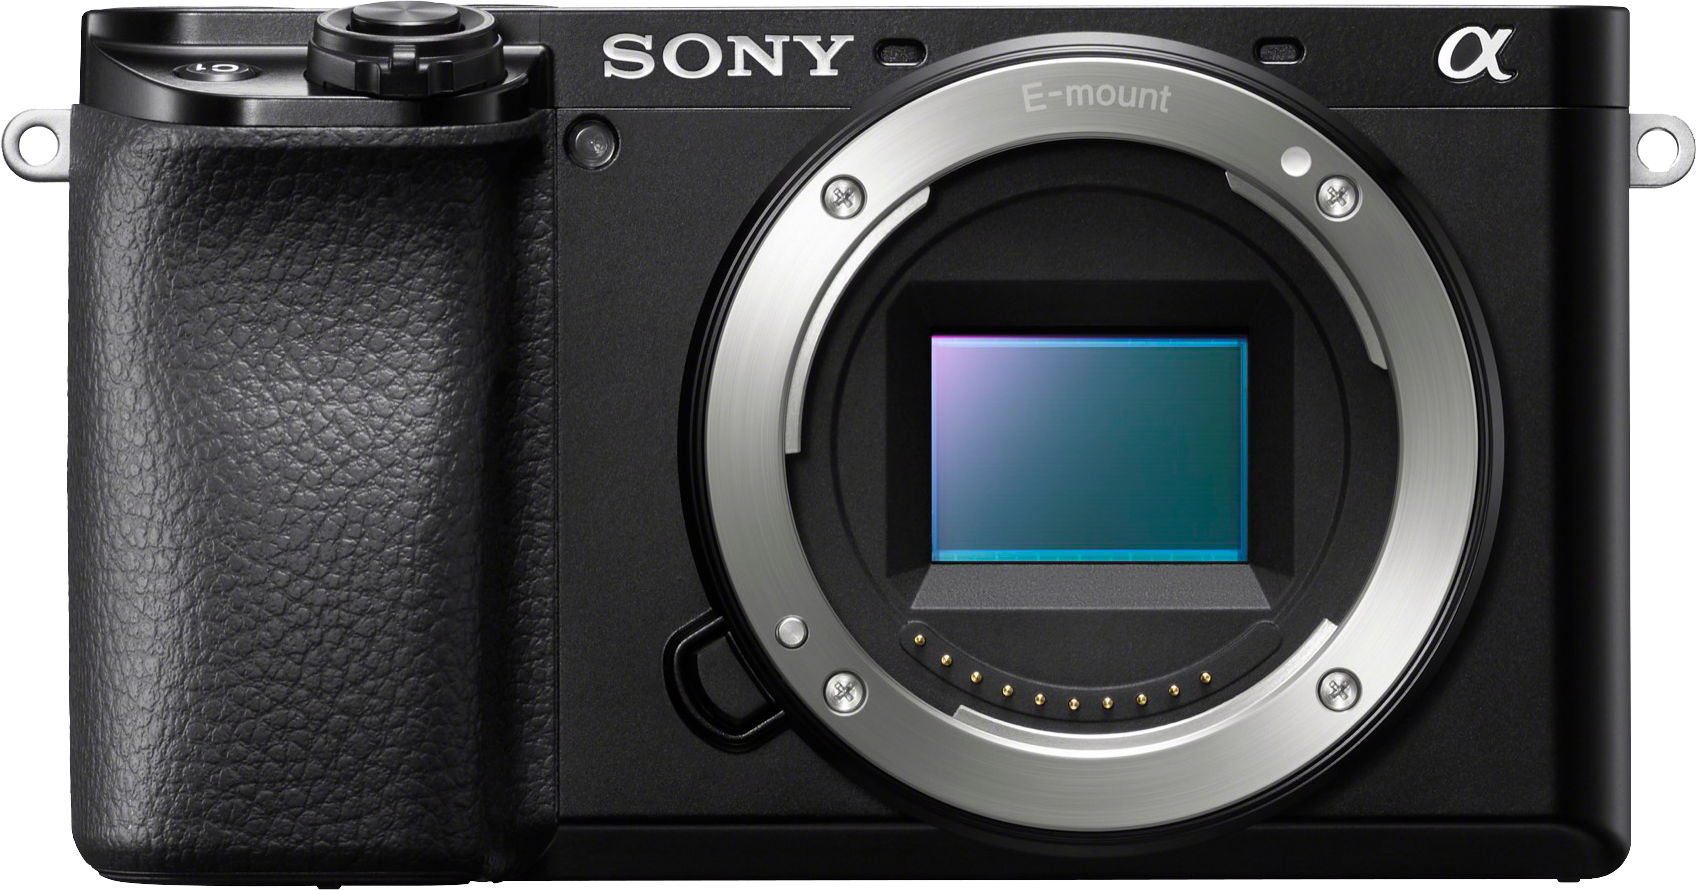 Sony a6100: Digital Photography Review